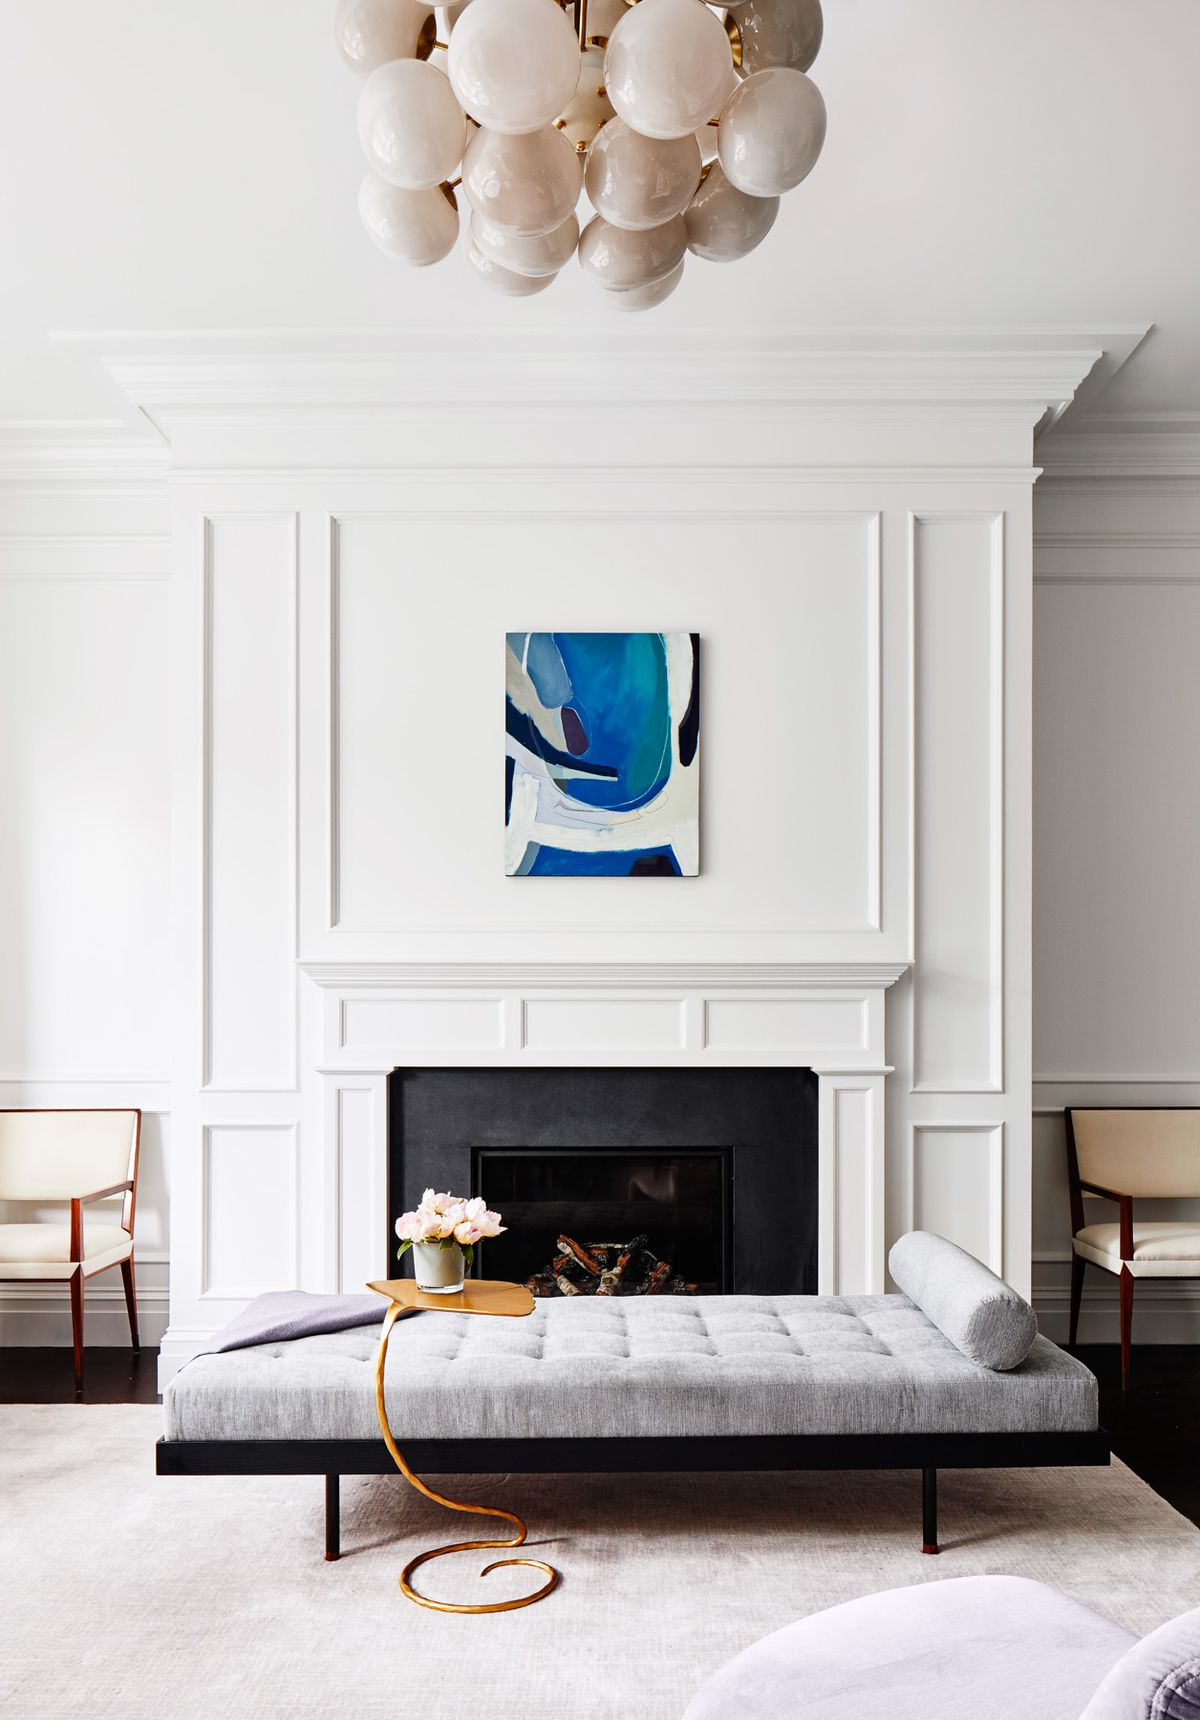 A cluster of globes form a pendant light in the living room. It hangs above a grey tufted daybed that is placed in front of the living room fireplace. Above the fireplace hangs a piece of abstract art with a blue/teal palette.